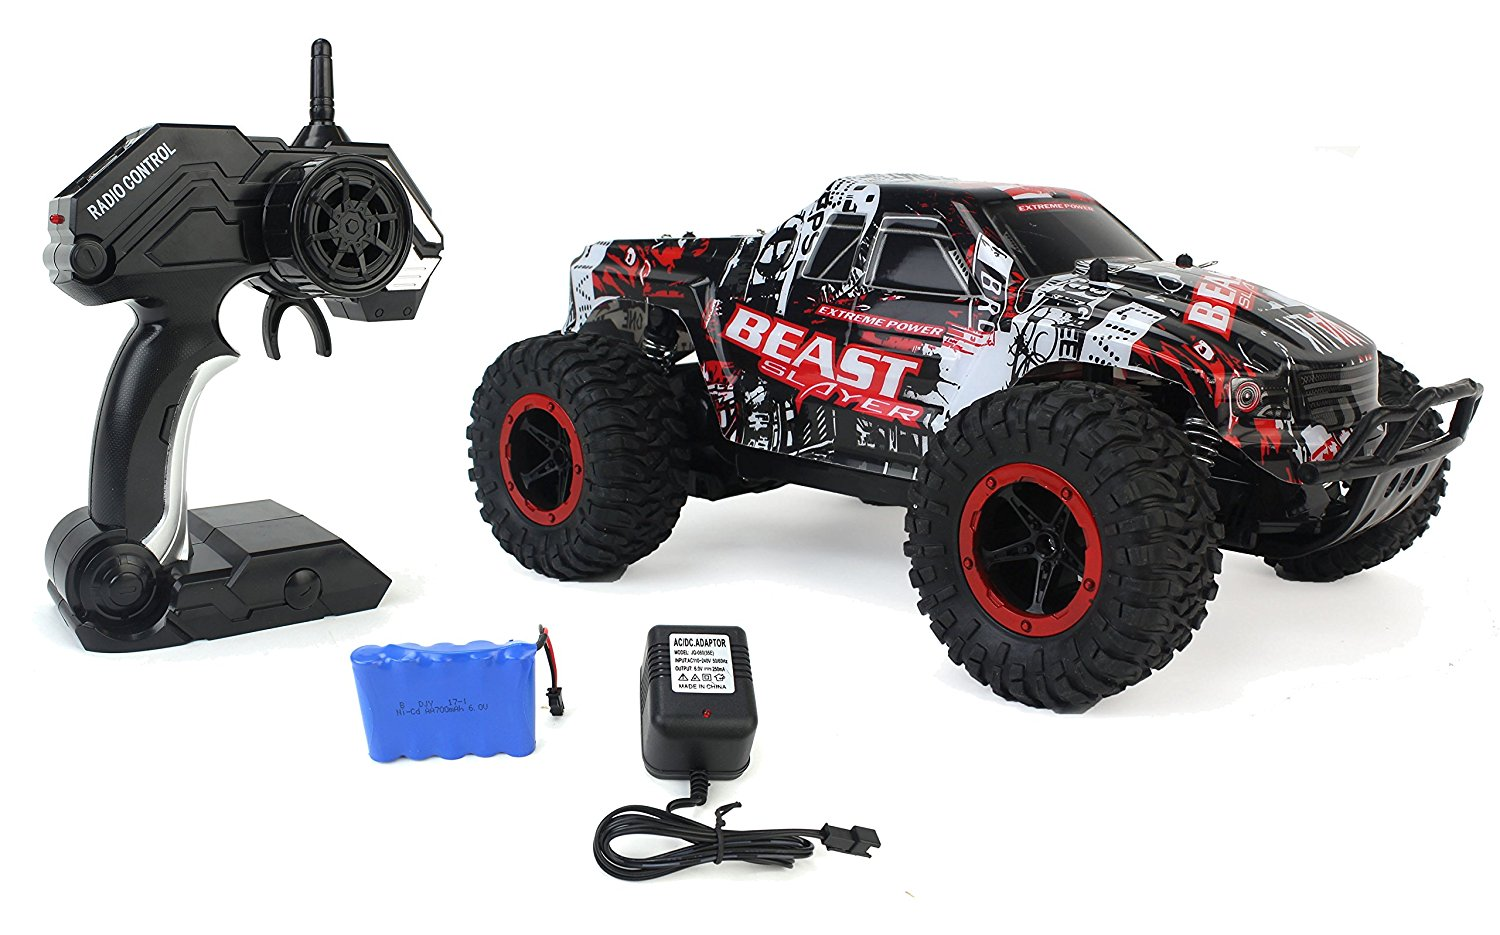 High Speed Racing Slayer Remote Control Red Toy Rally Truck RC Car 1:16 Scale Size w  Working Suspension,... by Velocity Toys